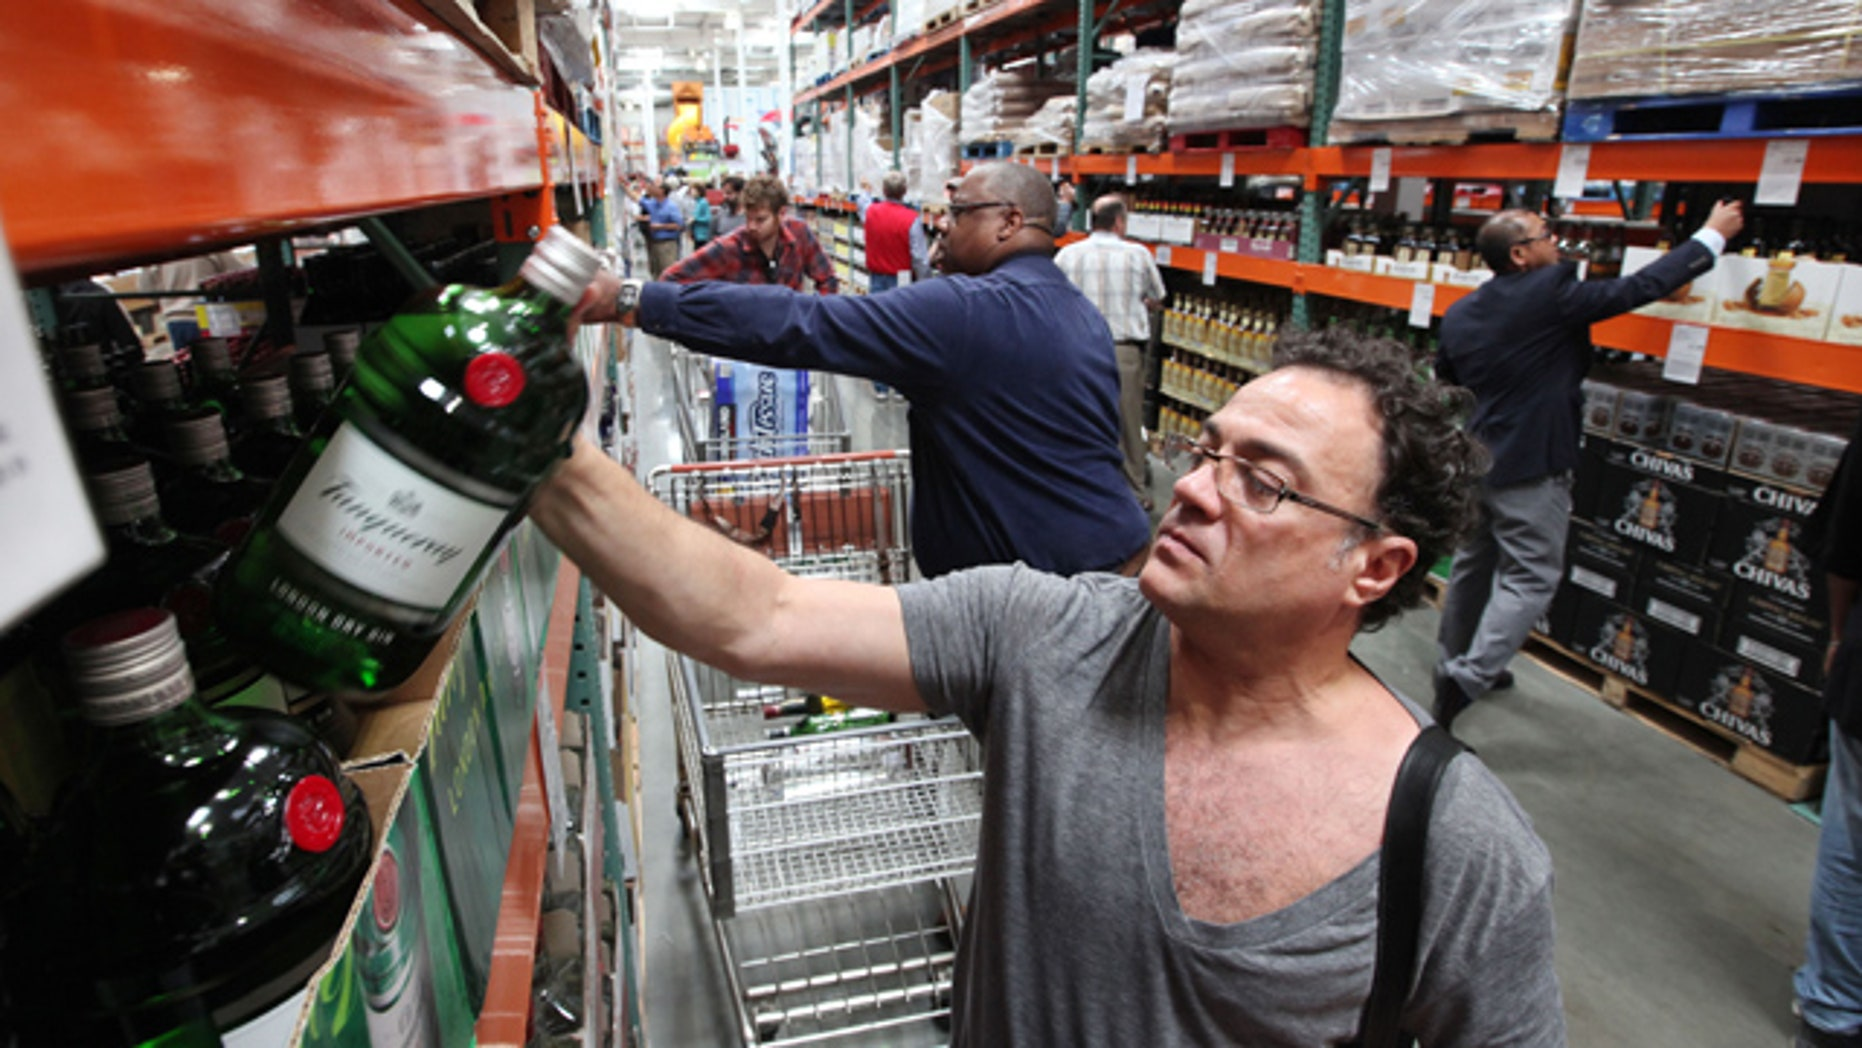 June 1, 2012: Al Bragalone looks at a bottle of gin as shoppers fill a new liquor aisle at a Costco warehouse store in Seattle, not far from the company's store in Bellingham, Wash., where some shoppers want American-only hours amid a crush of Canadian consumers. (AP)